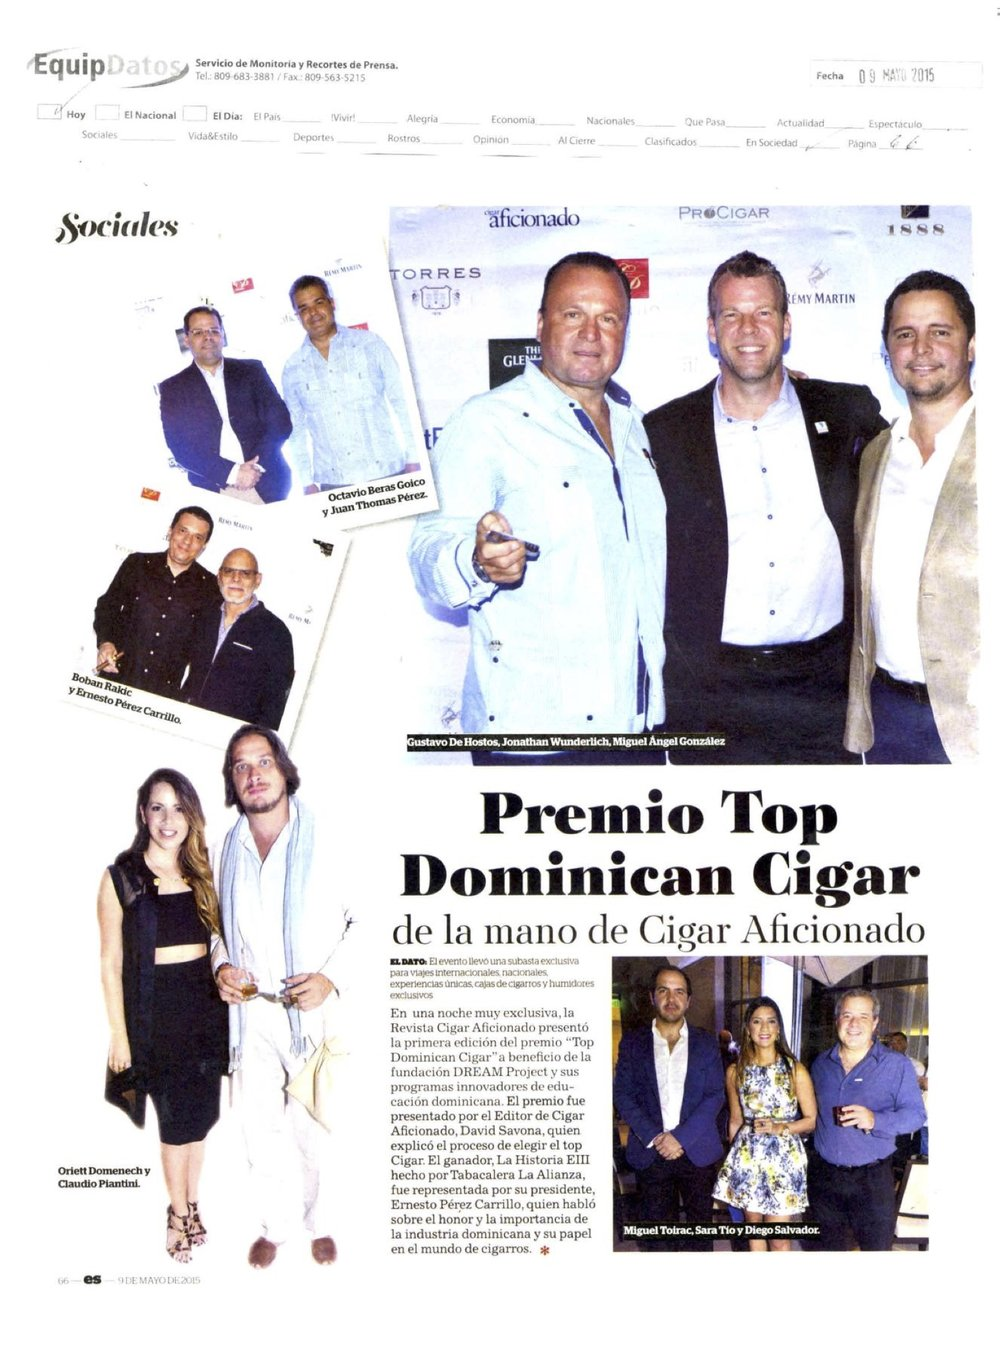 Top-Dominican-Cigar-A-Beneficio-de-DREAM-2.jpg